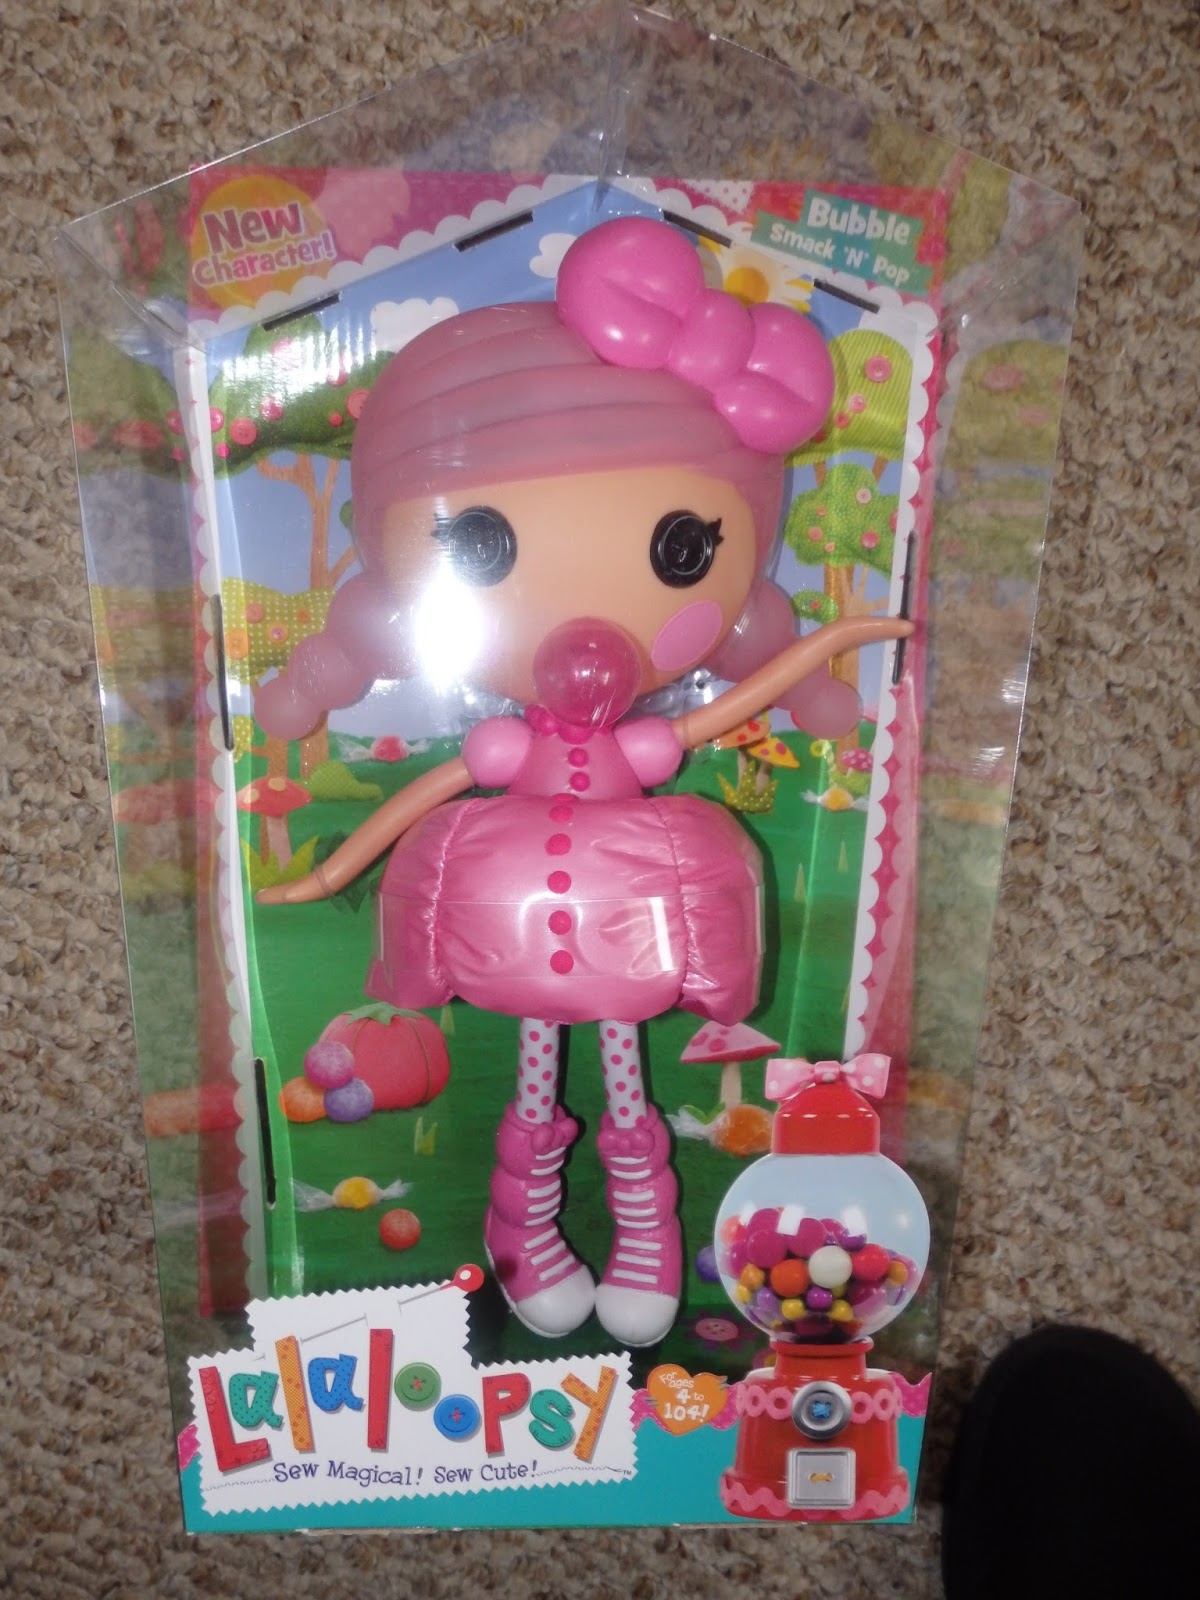 New Age Mama Easter Gift Guide Lalaloopsy Bubble Smack N Pop